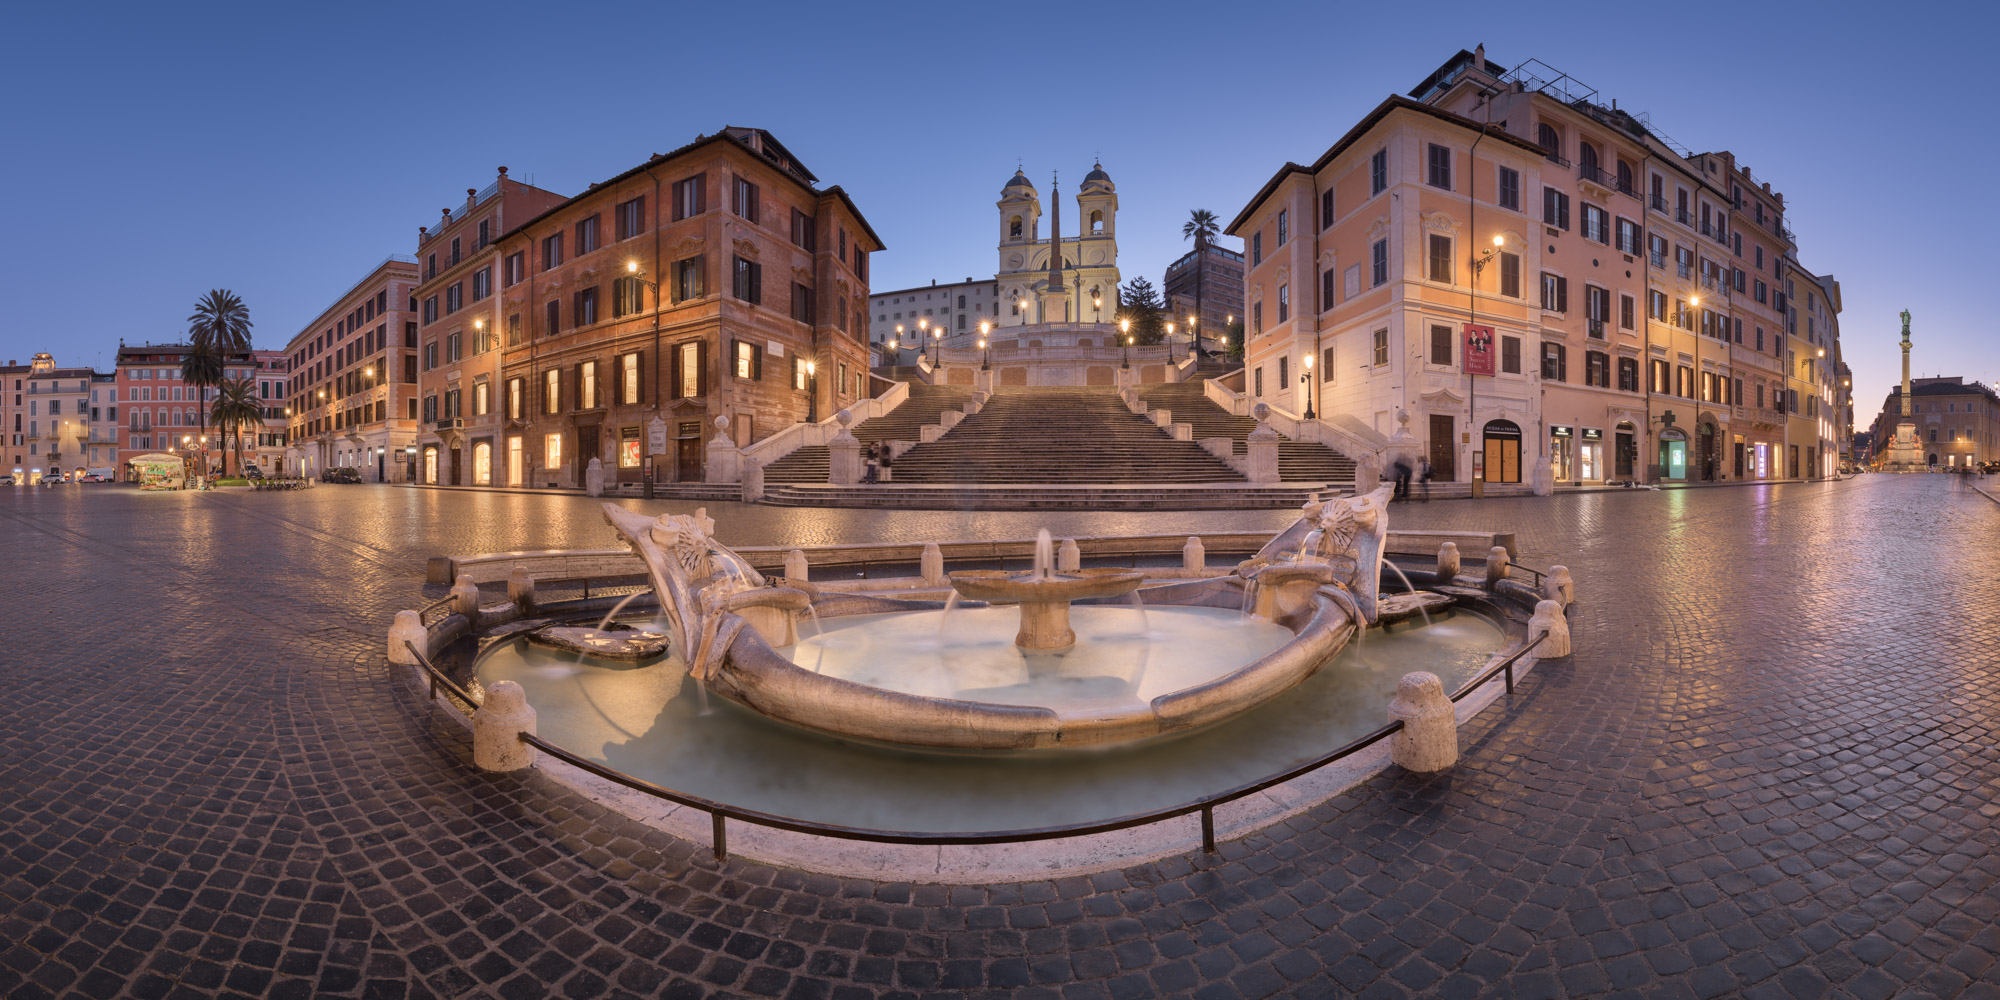 Piazza di Spagna and Spanish Steps, Rome, Italy